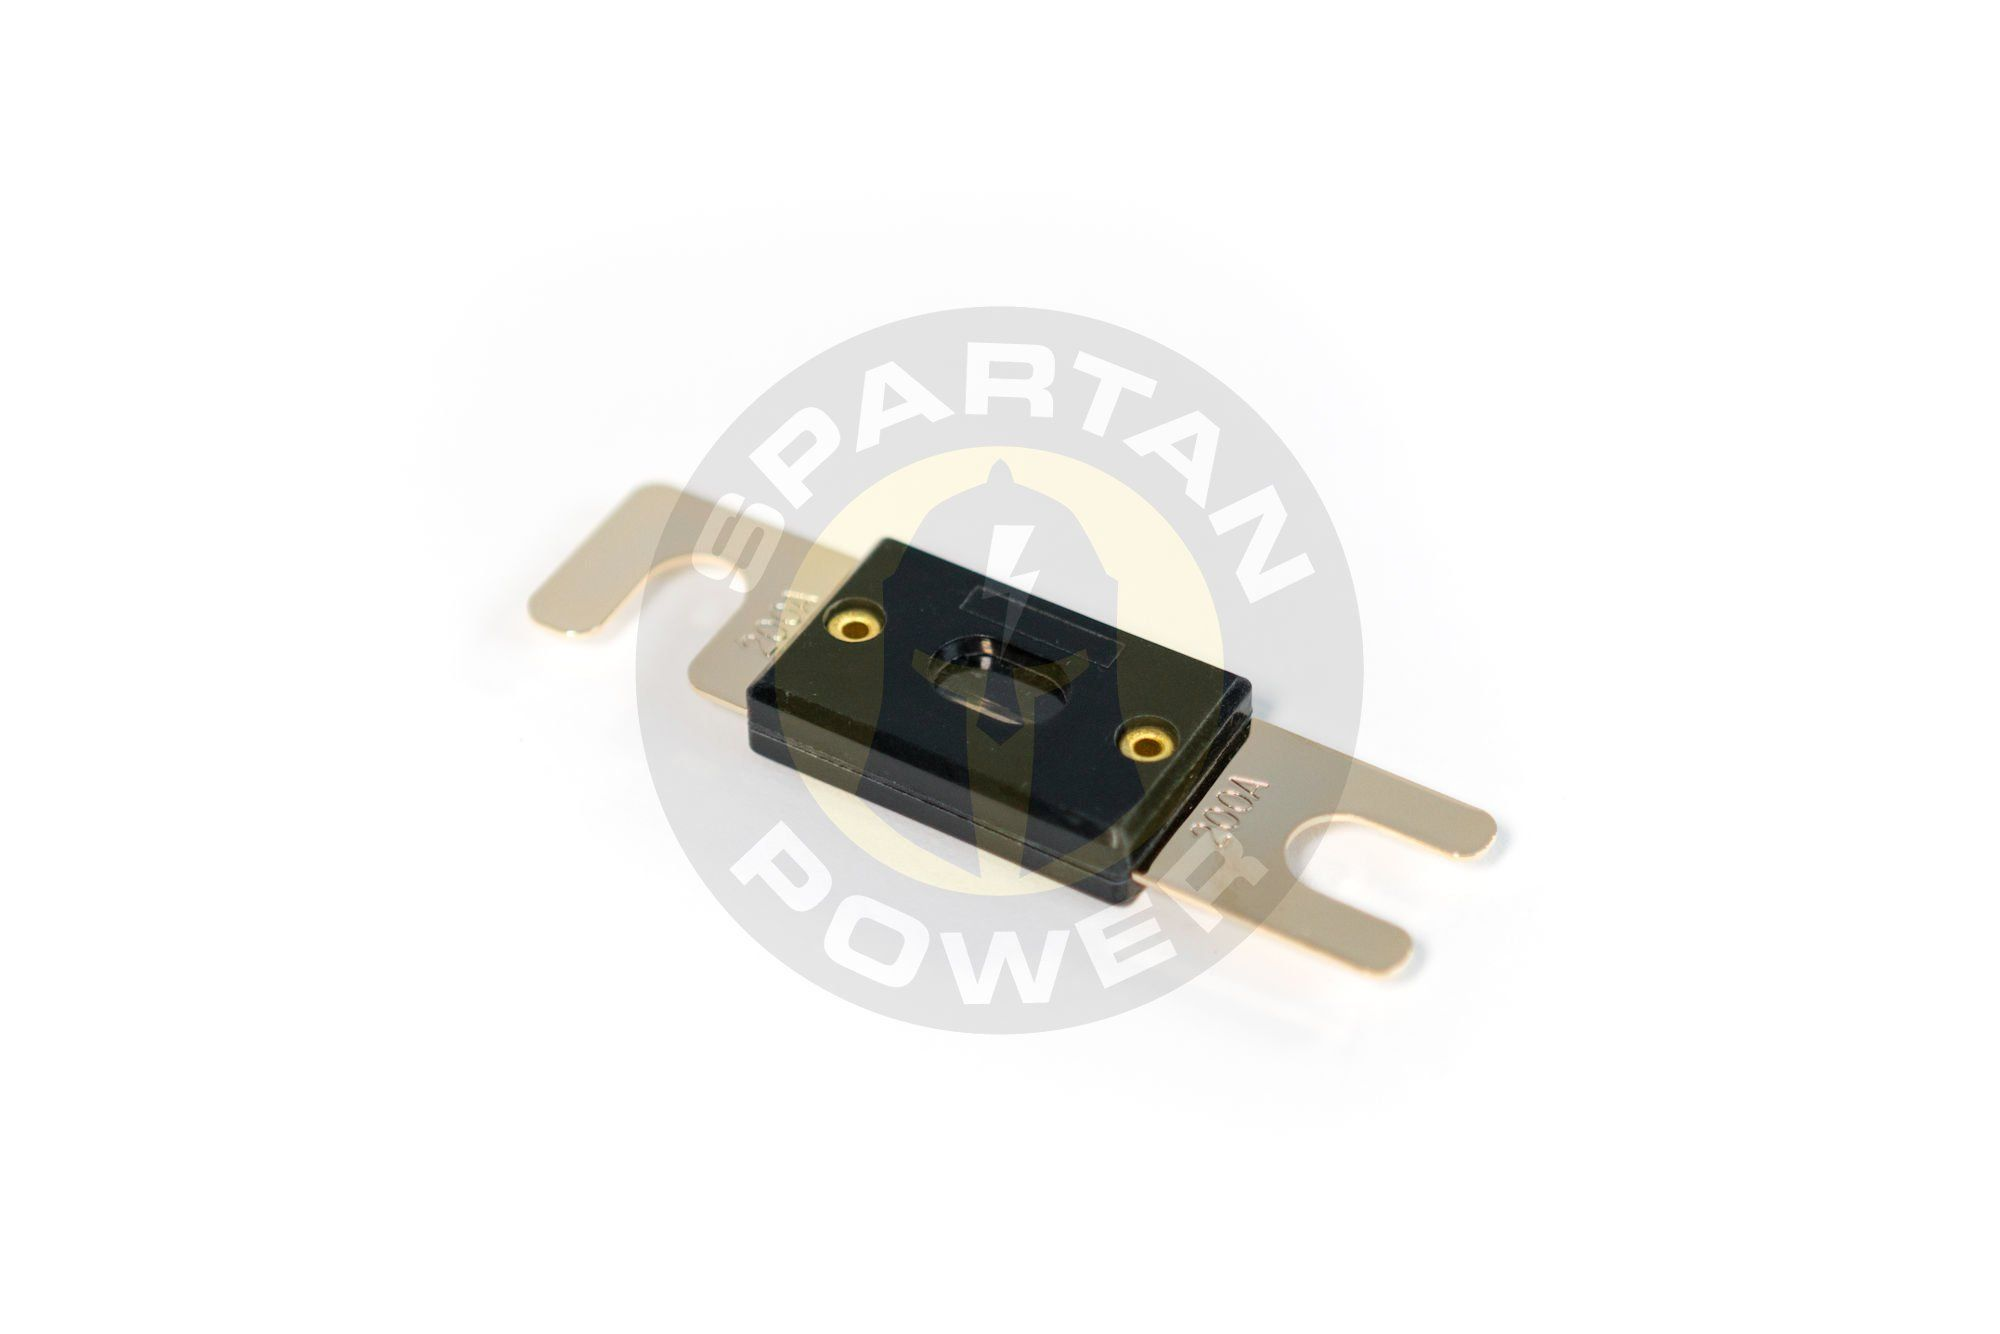 Spartan Power 200 Amp Anl Fuse Fuses Made In The Taiwan To View Further For This Item Visit The Image Link This Is An Affiliate Fuses Taiwan Breakers